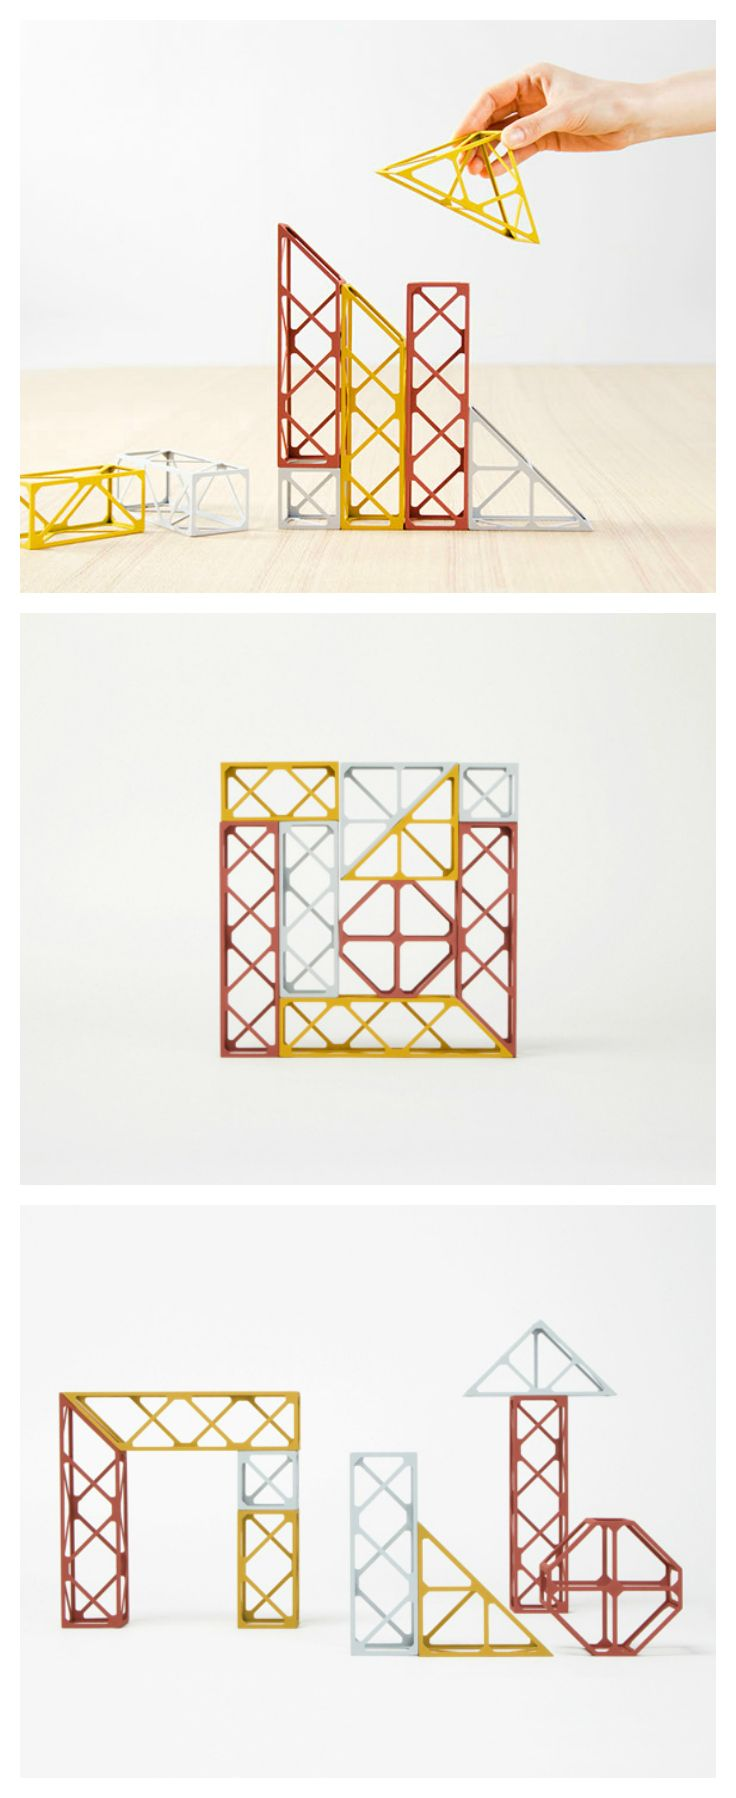 B6 studio - Playful Projects for Kids and Grown-ups #articlesblog